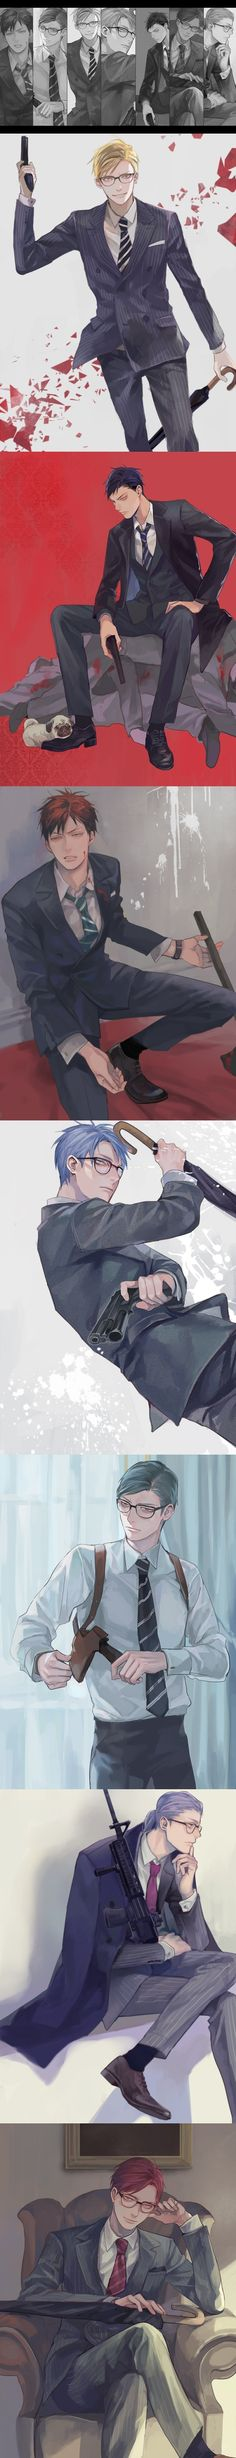 Kiseki no Sedai and Kingsman crossover